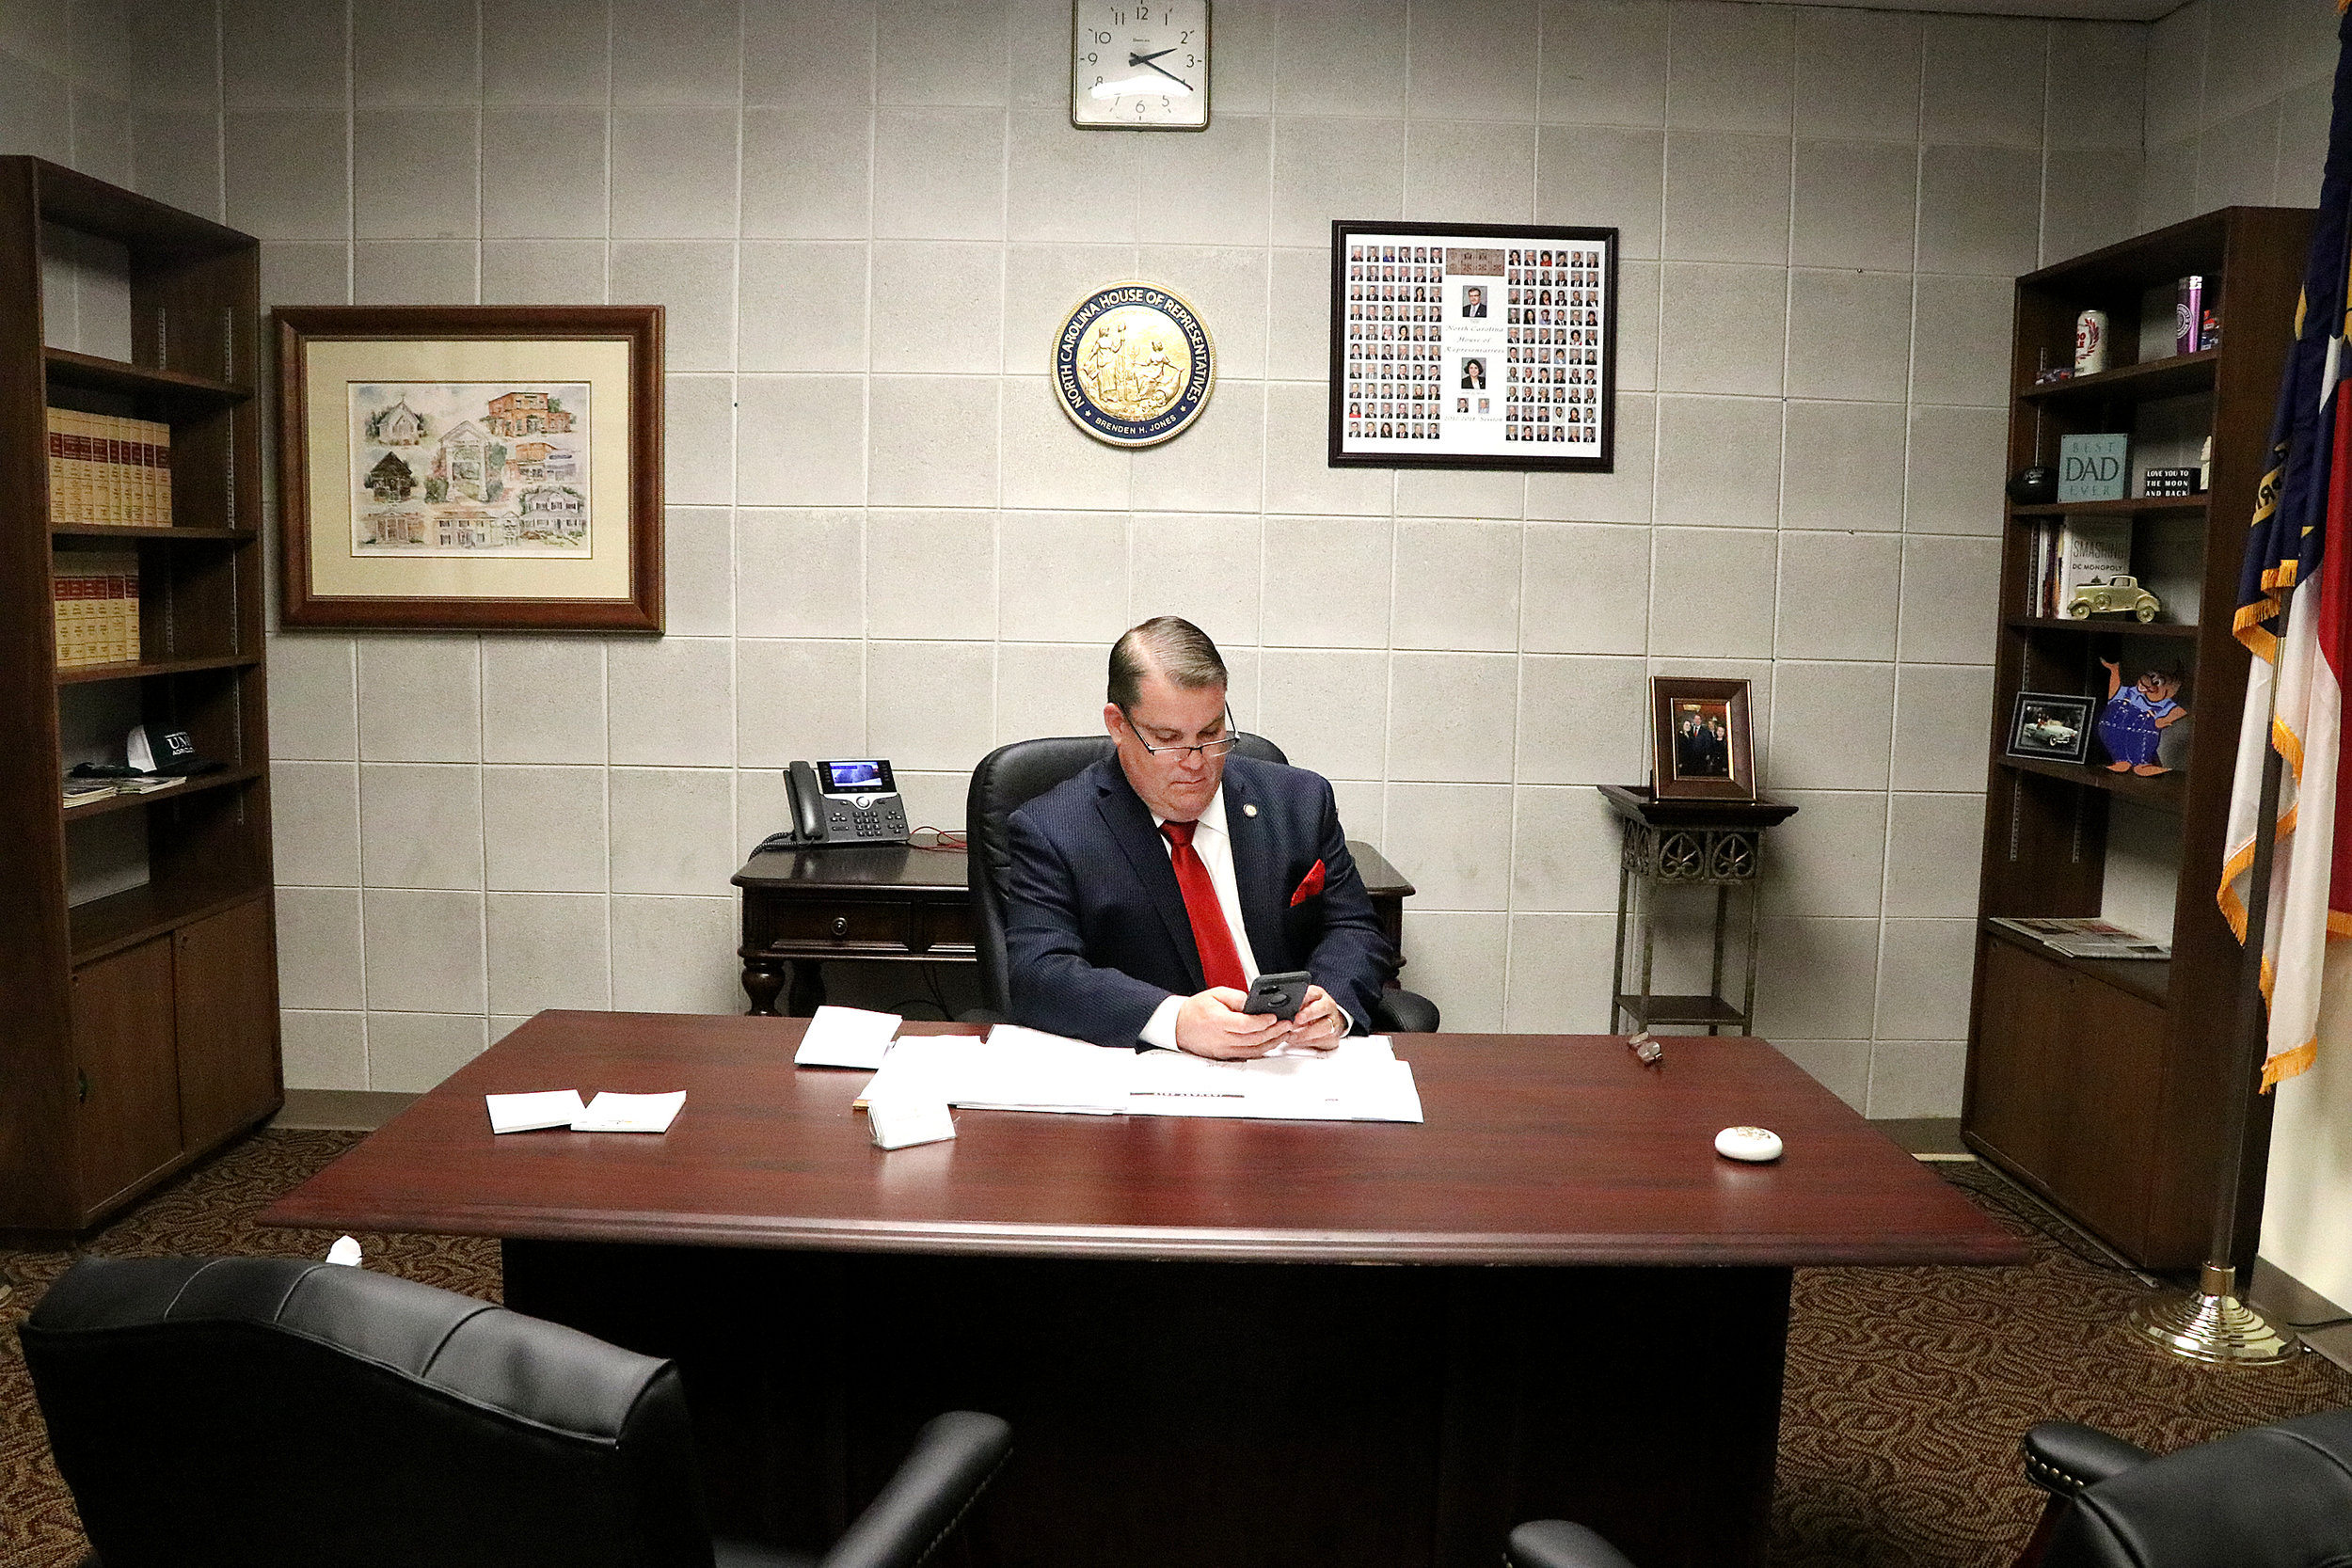 Rep. Brenden Jones (R-Columbus) works in his new office Wednesday in the Legislative Building. The office, which is four times larger than his previous one, is a result of Jones' new leadership post as deputy majority leader.